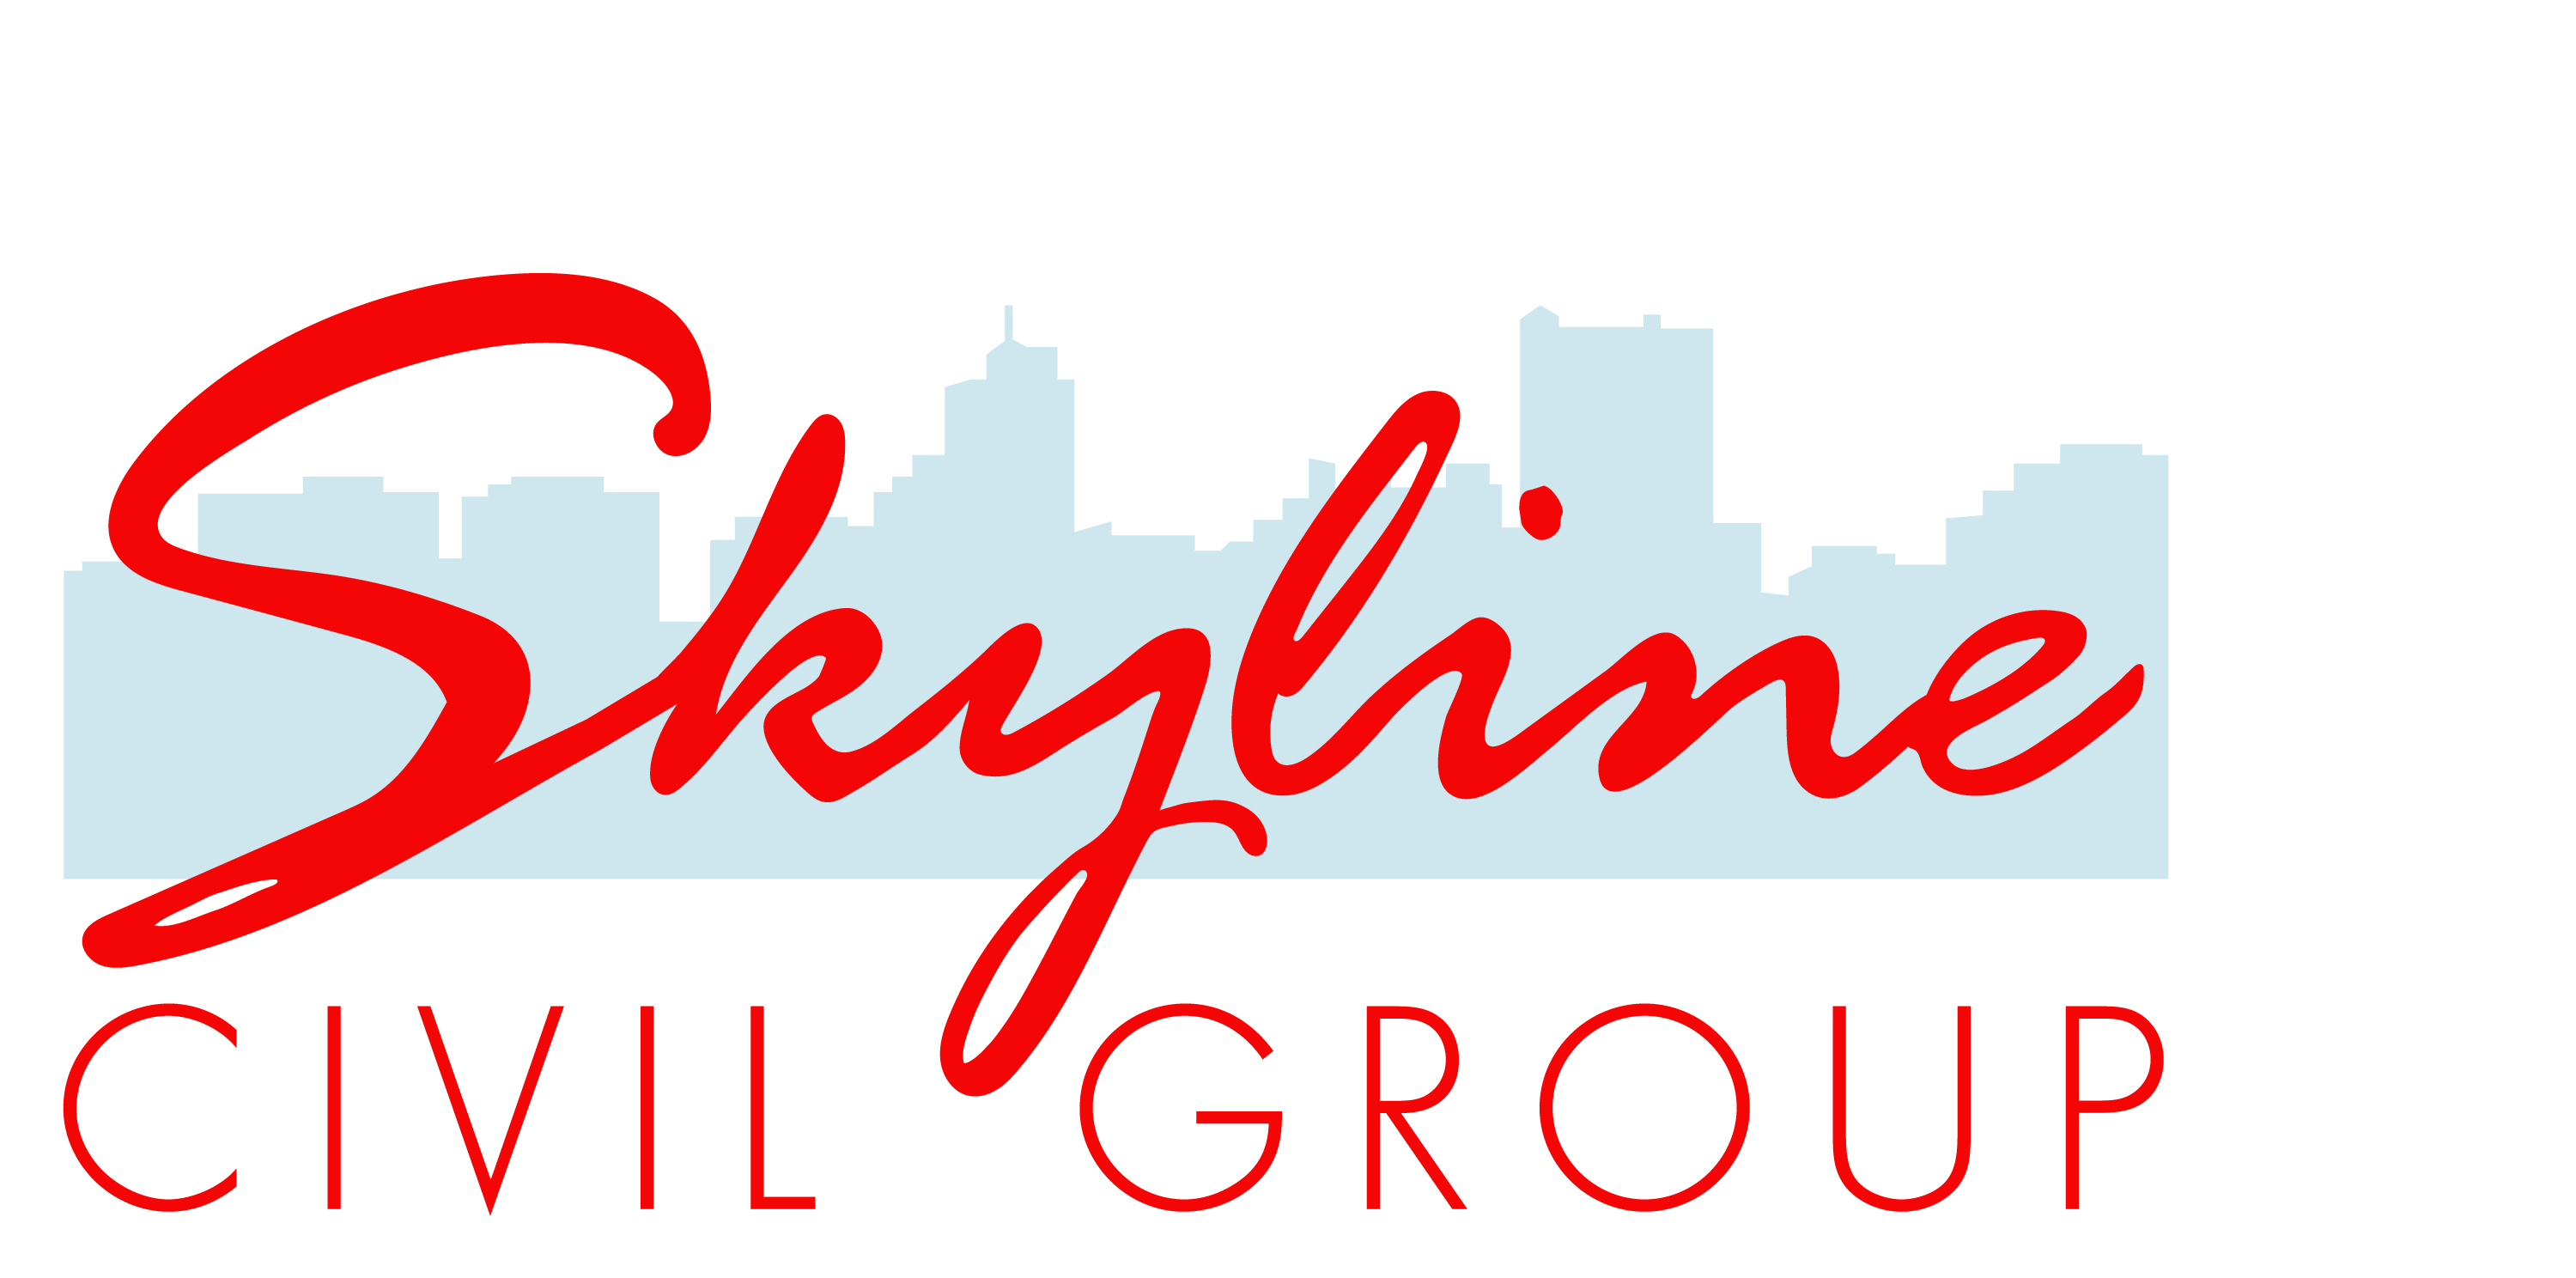 Skyline Civil Group